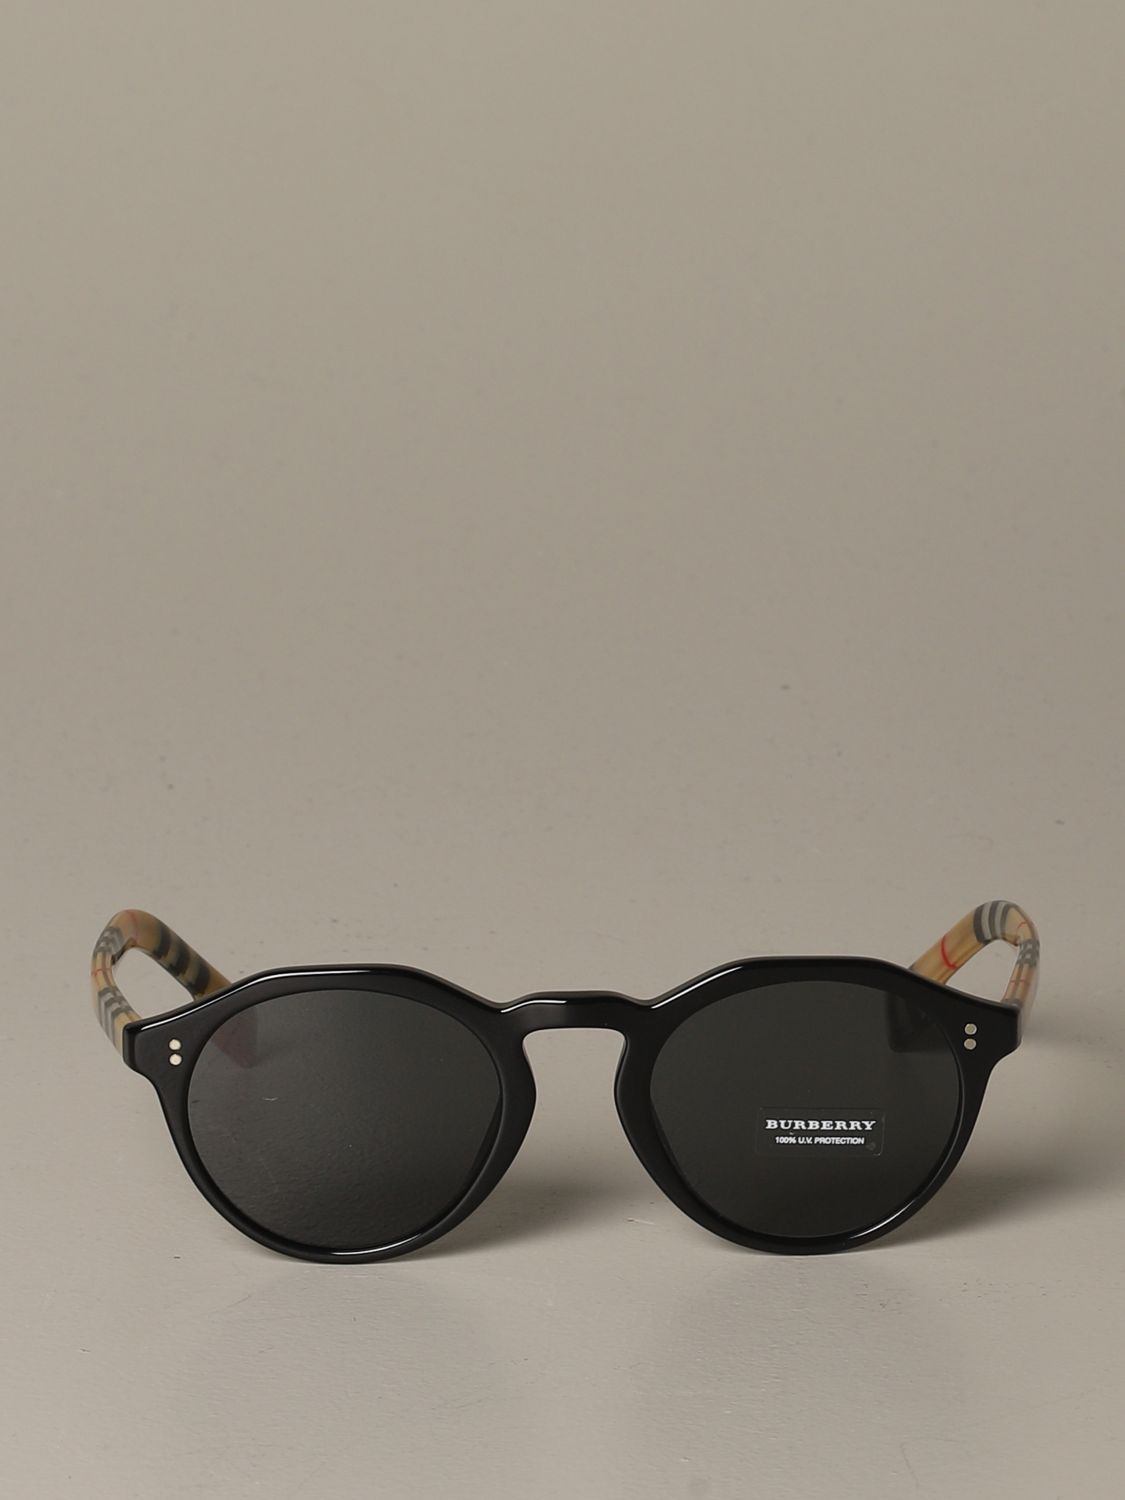 Glasses Burberry: Blake Burberry sunglasses with check temples black 2